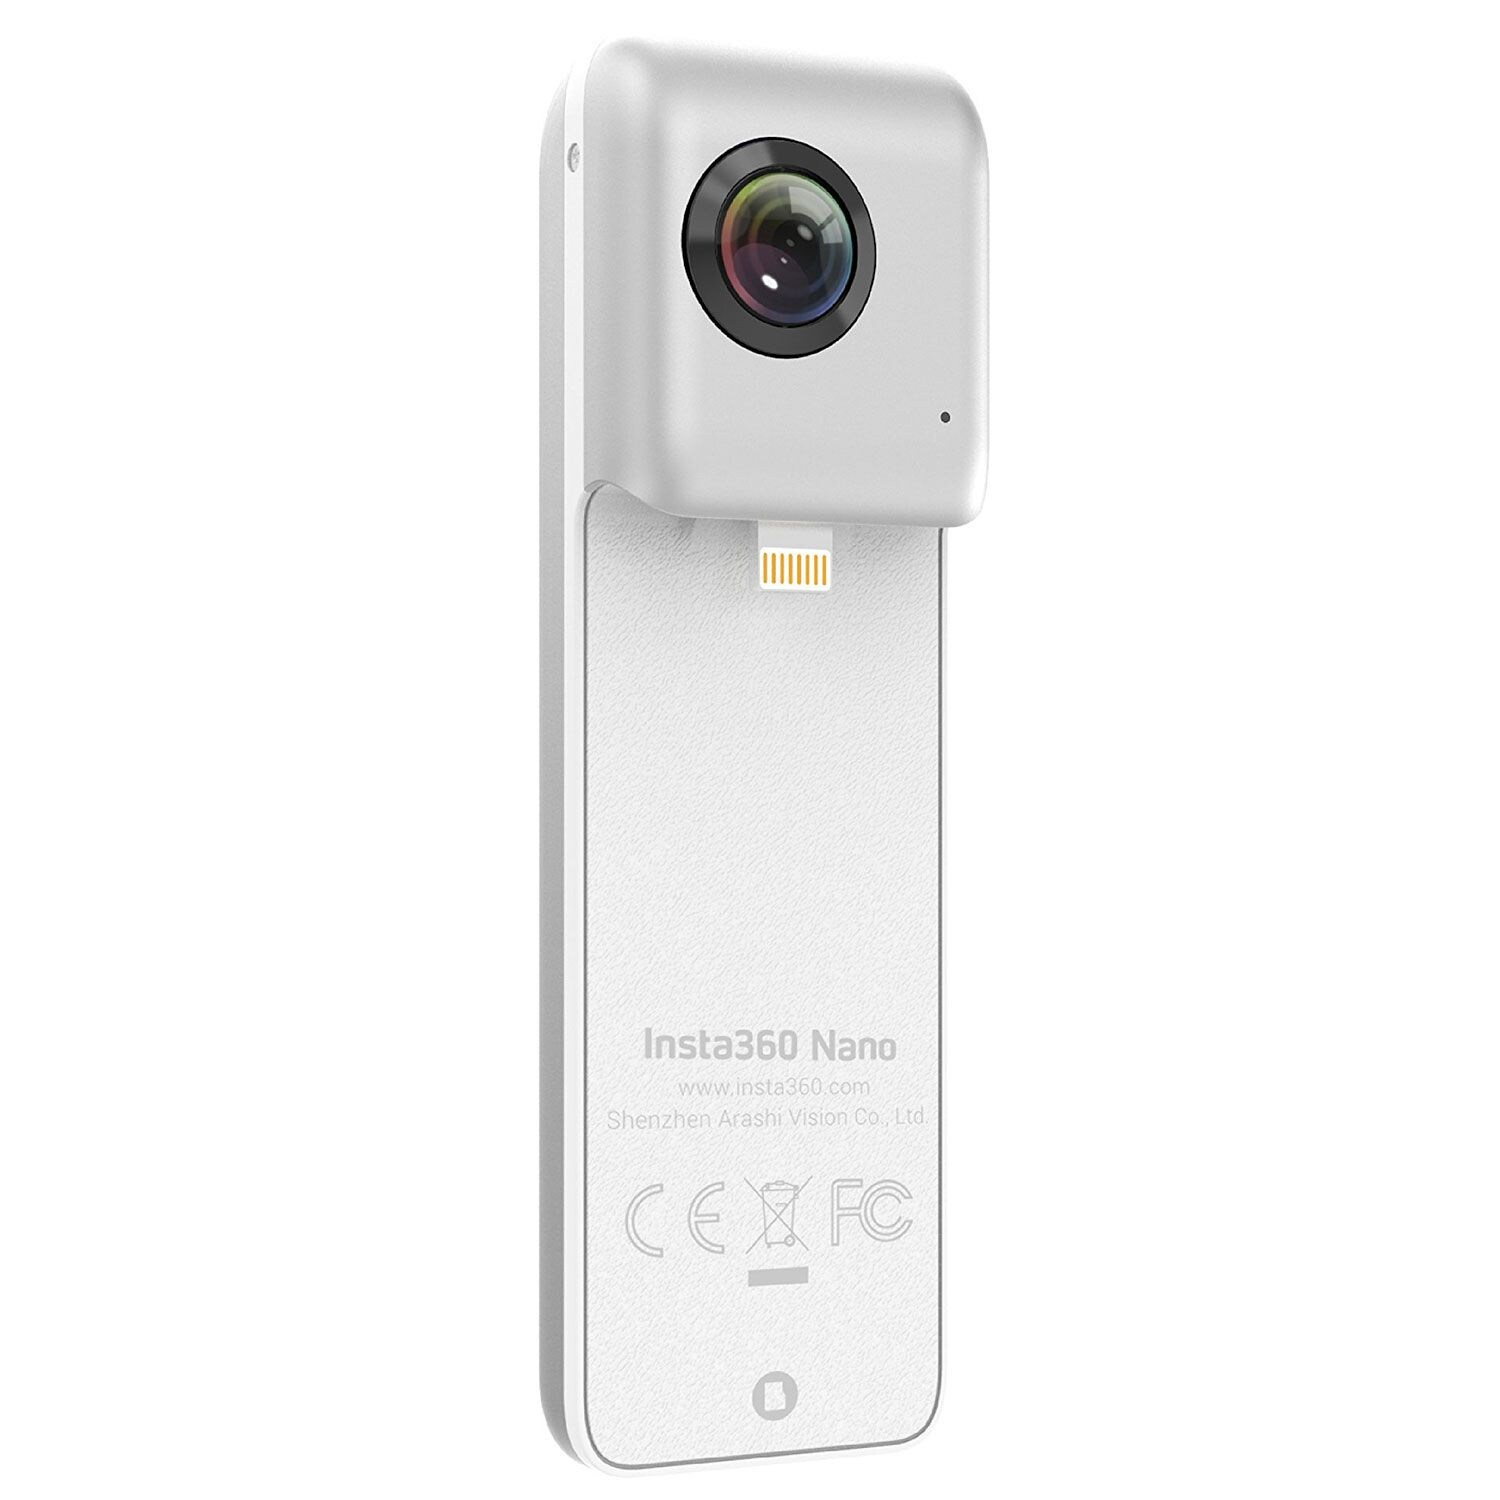 Insta360 Nano Action Camera White για iPhone (8, 8 Plus, 7, 7 Plus, 6S, 6 Plus, 6S Plus) ή & μεμονωμένα